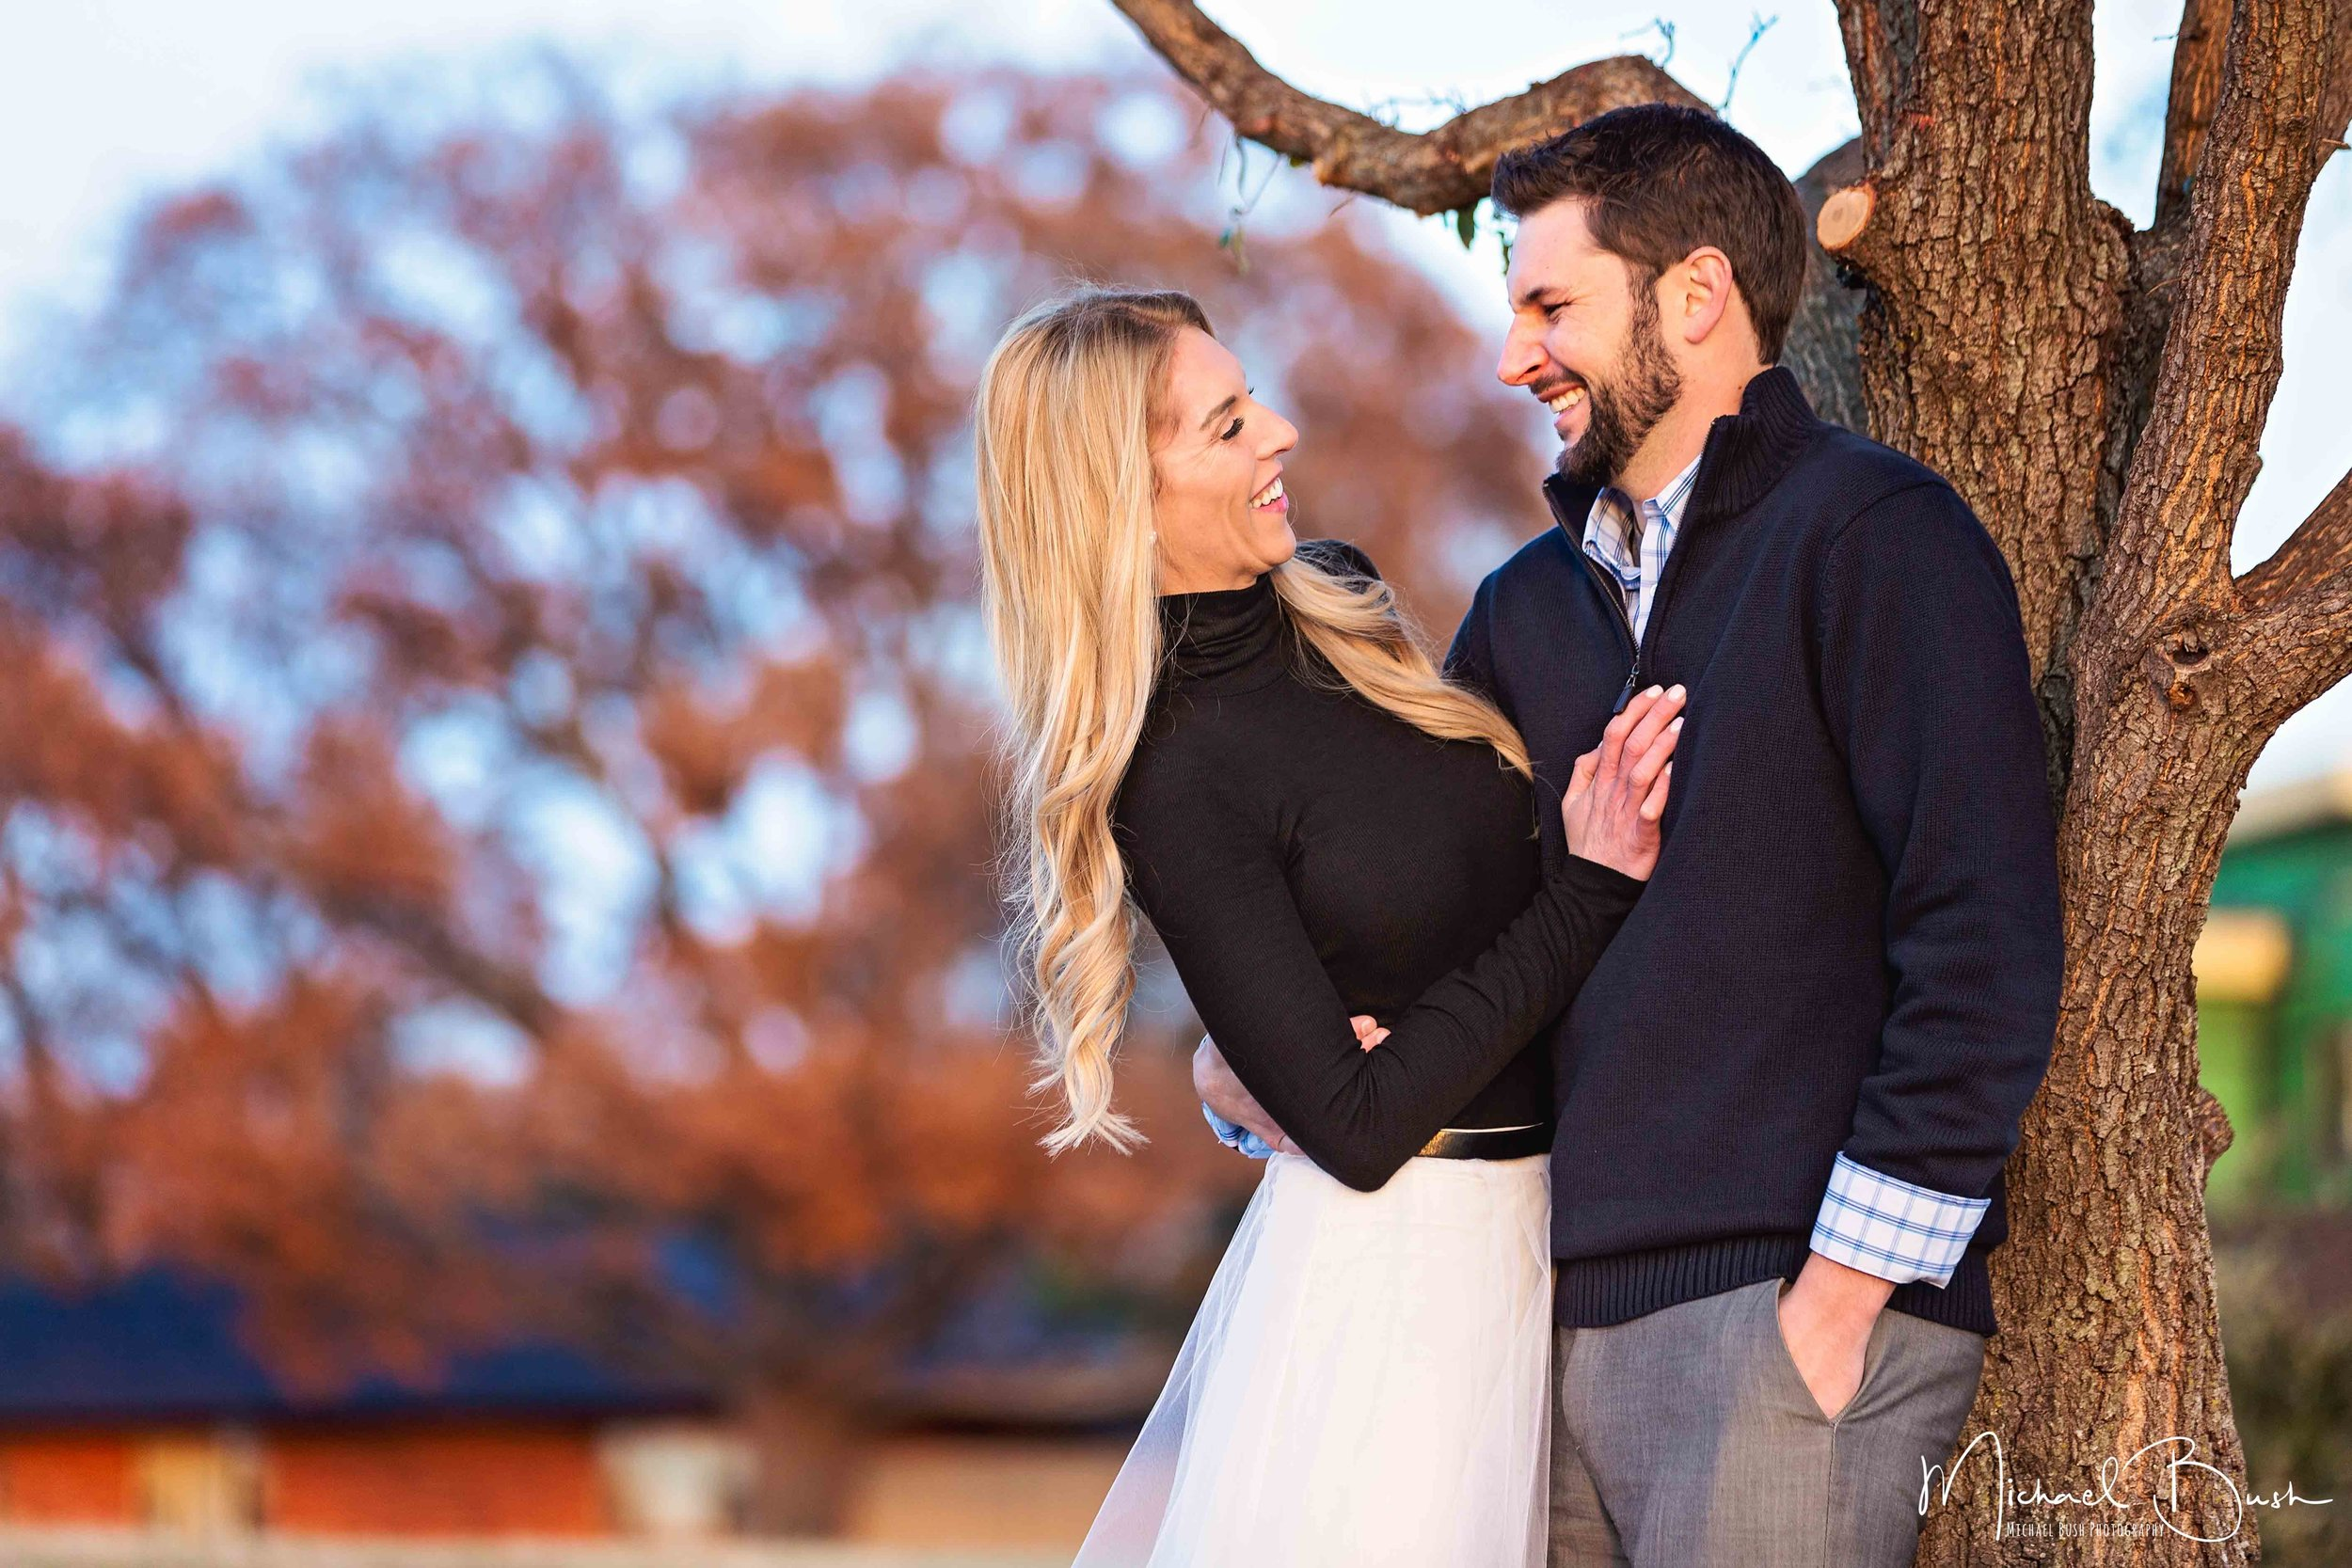 Dallas-Engagements-WhiteRockLake-Sky-DallasSkyline-love-couple-romantic.jpg